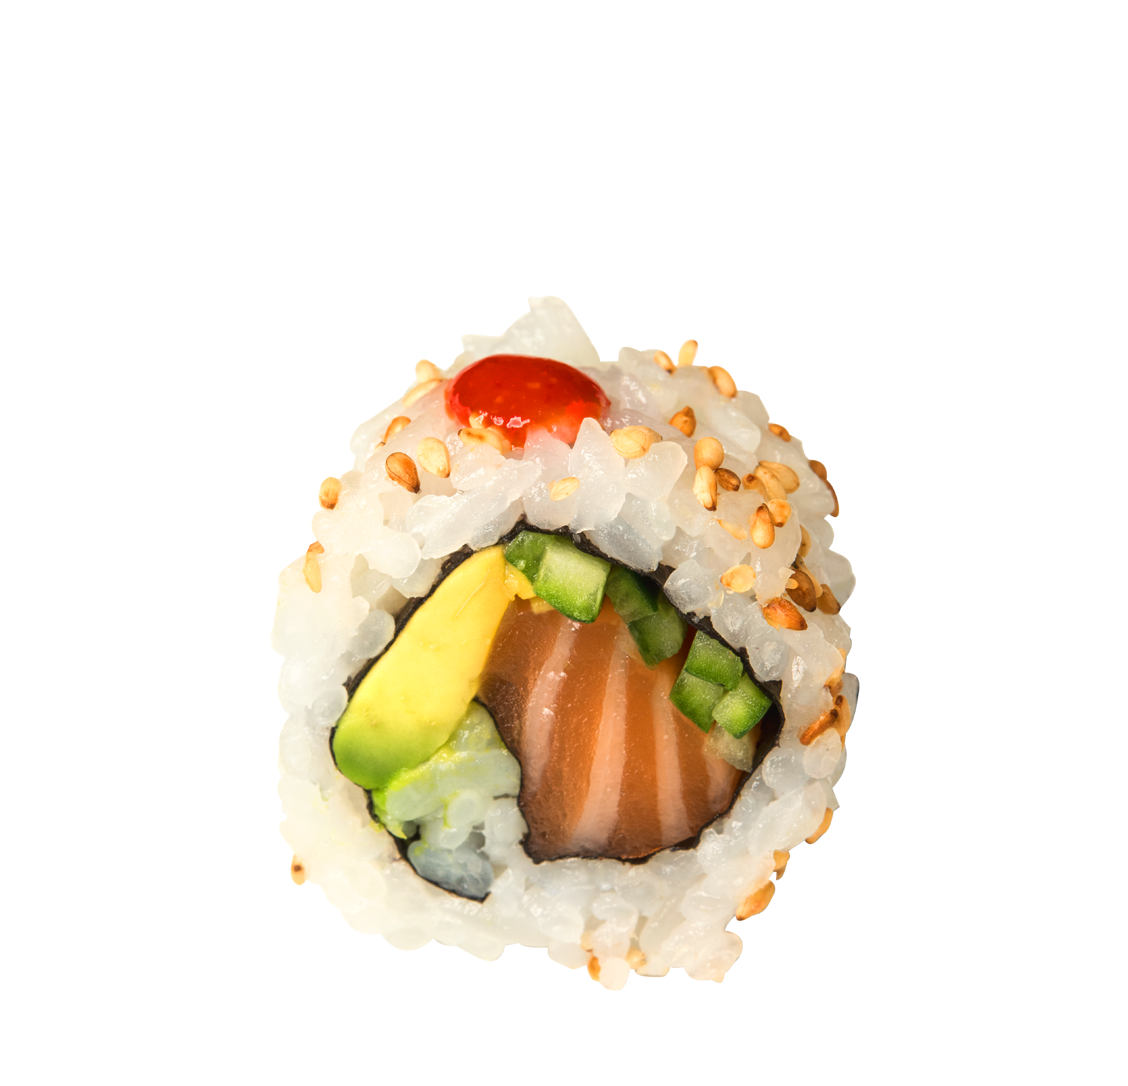 Lachs, Gurke, Avocado, Chili title=Hot Rod </br>8,50 €